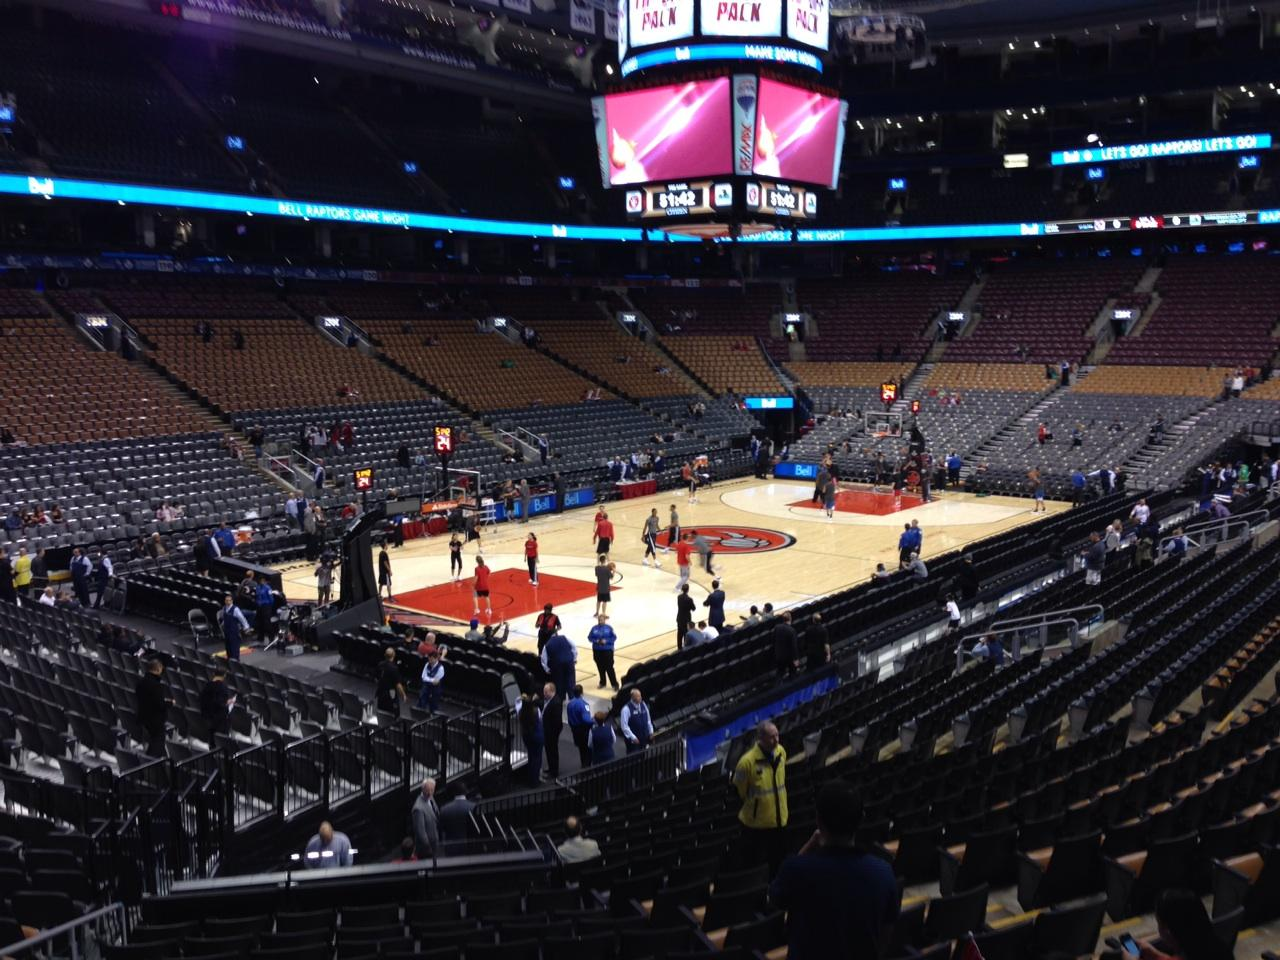 Air Canada Centre Section 111 Seat Views/SeatScore ...